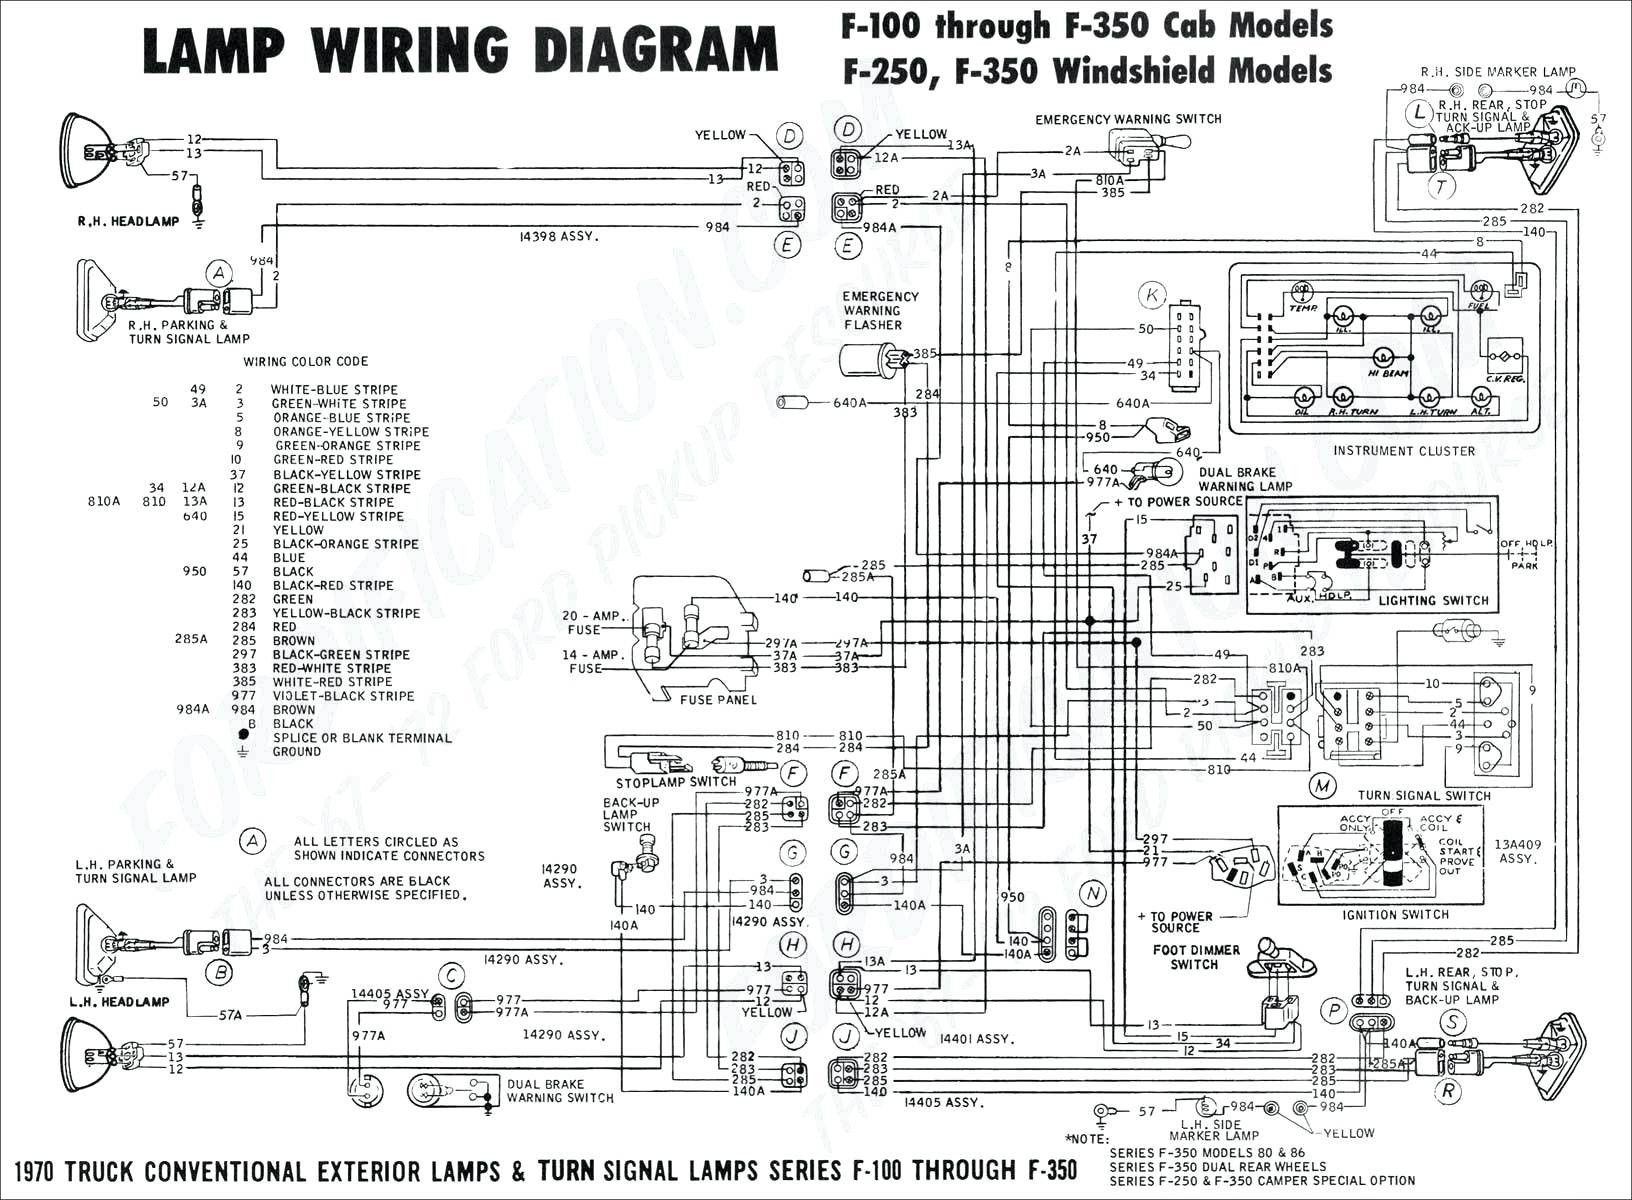 1998 Nissan Maxima Engine Diagram In 2020 Trailer Wiring Diagram Electrical Wiring Diagram Diagram